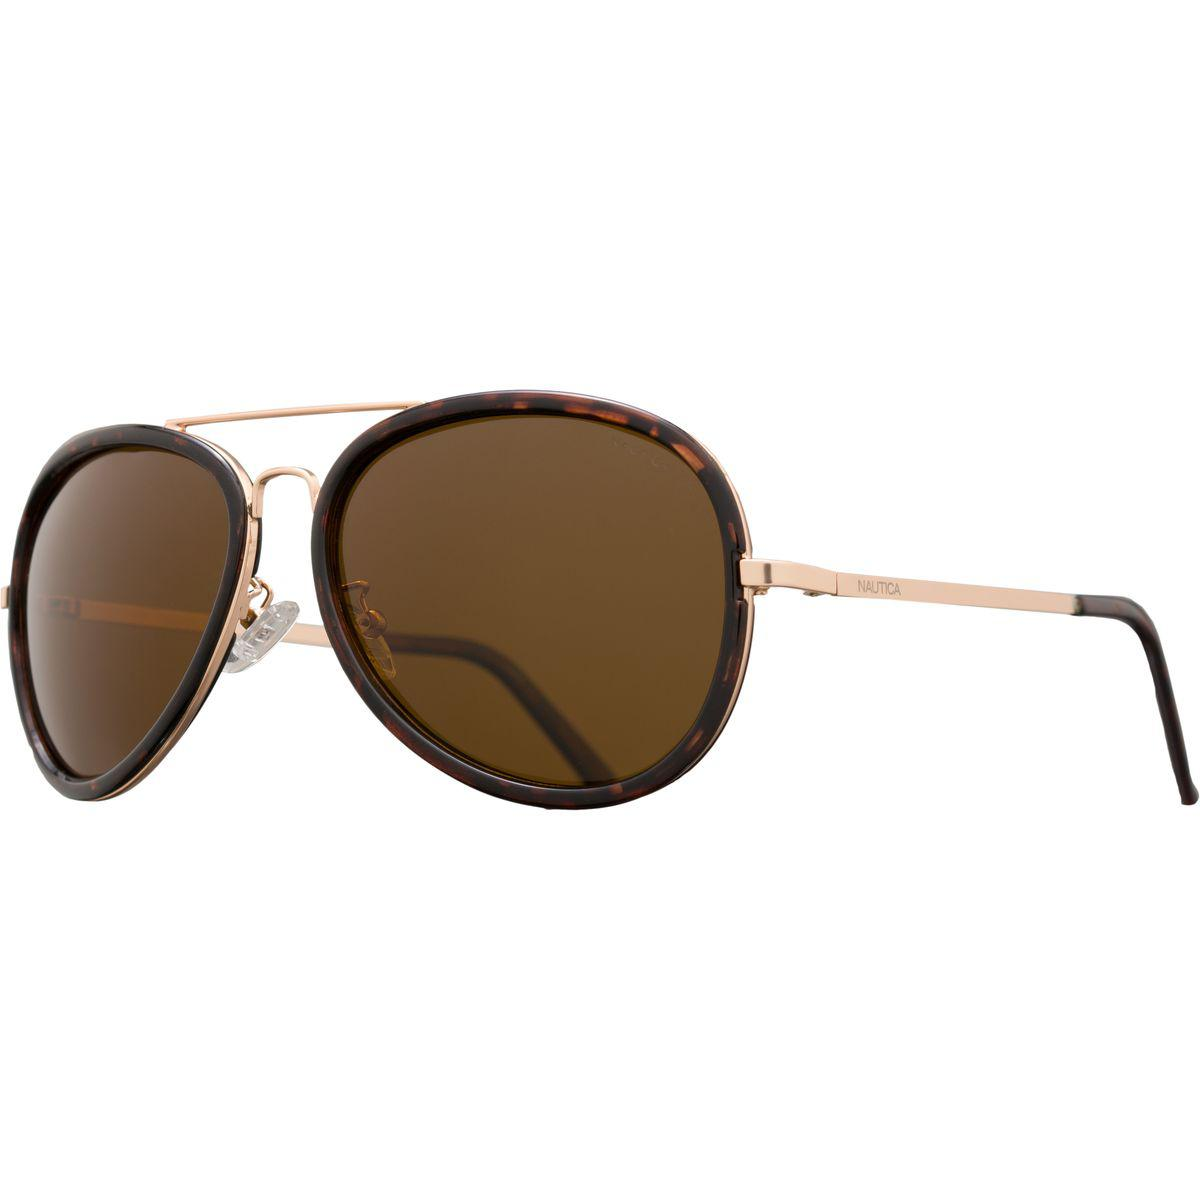 26fd7a8c8e Lyst - Nautica N4612sp Polarized Sunglasses in Brown for Men